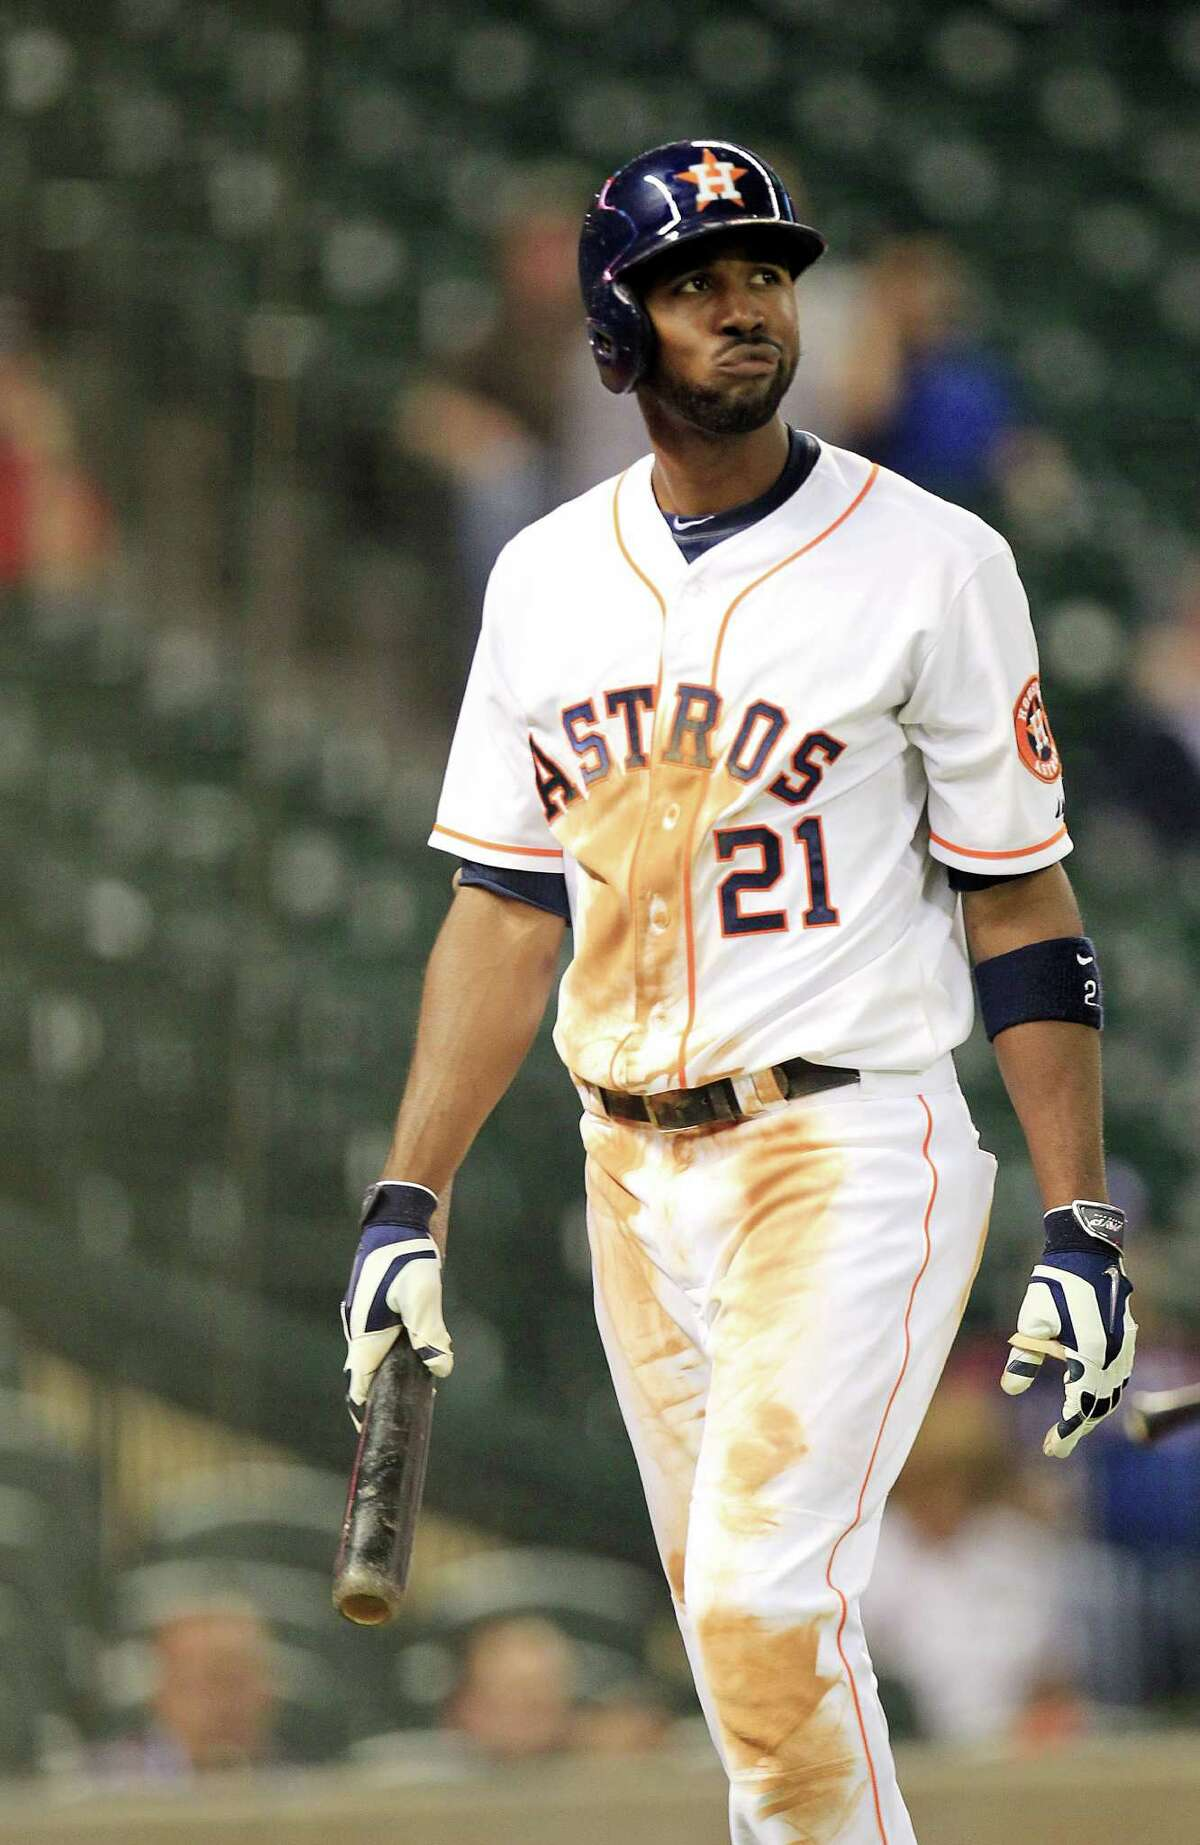 Dexter Fowler returns to the dugout after striking out in the ninth inning, one of 14 strikeouts for the Astros, who left 12 men on base.